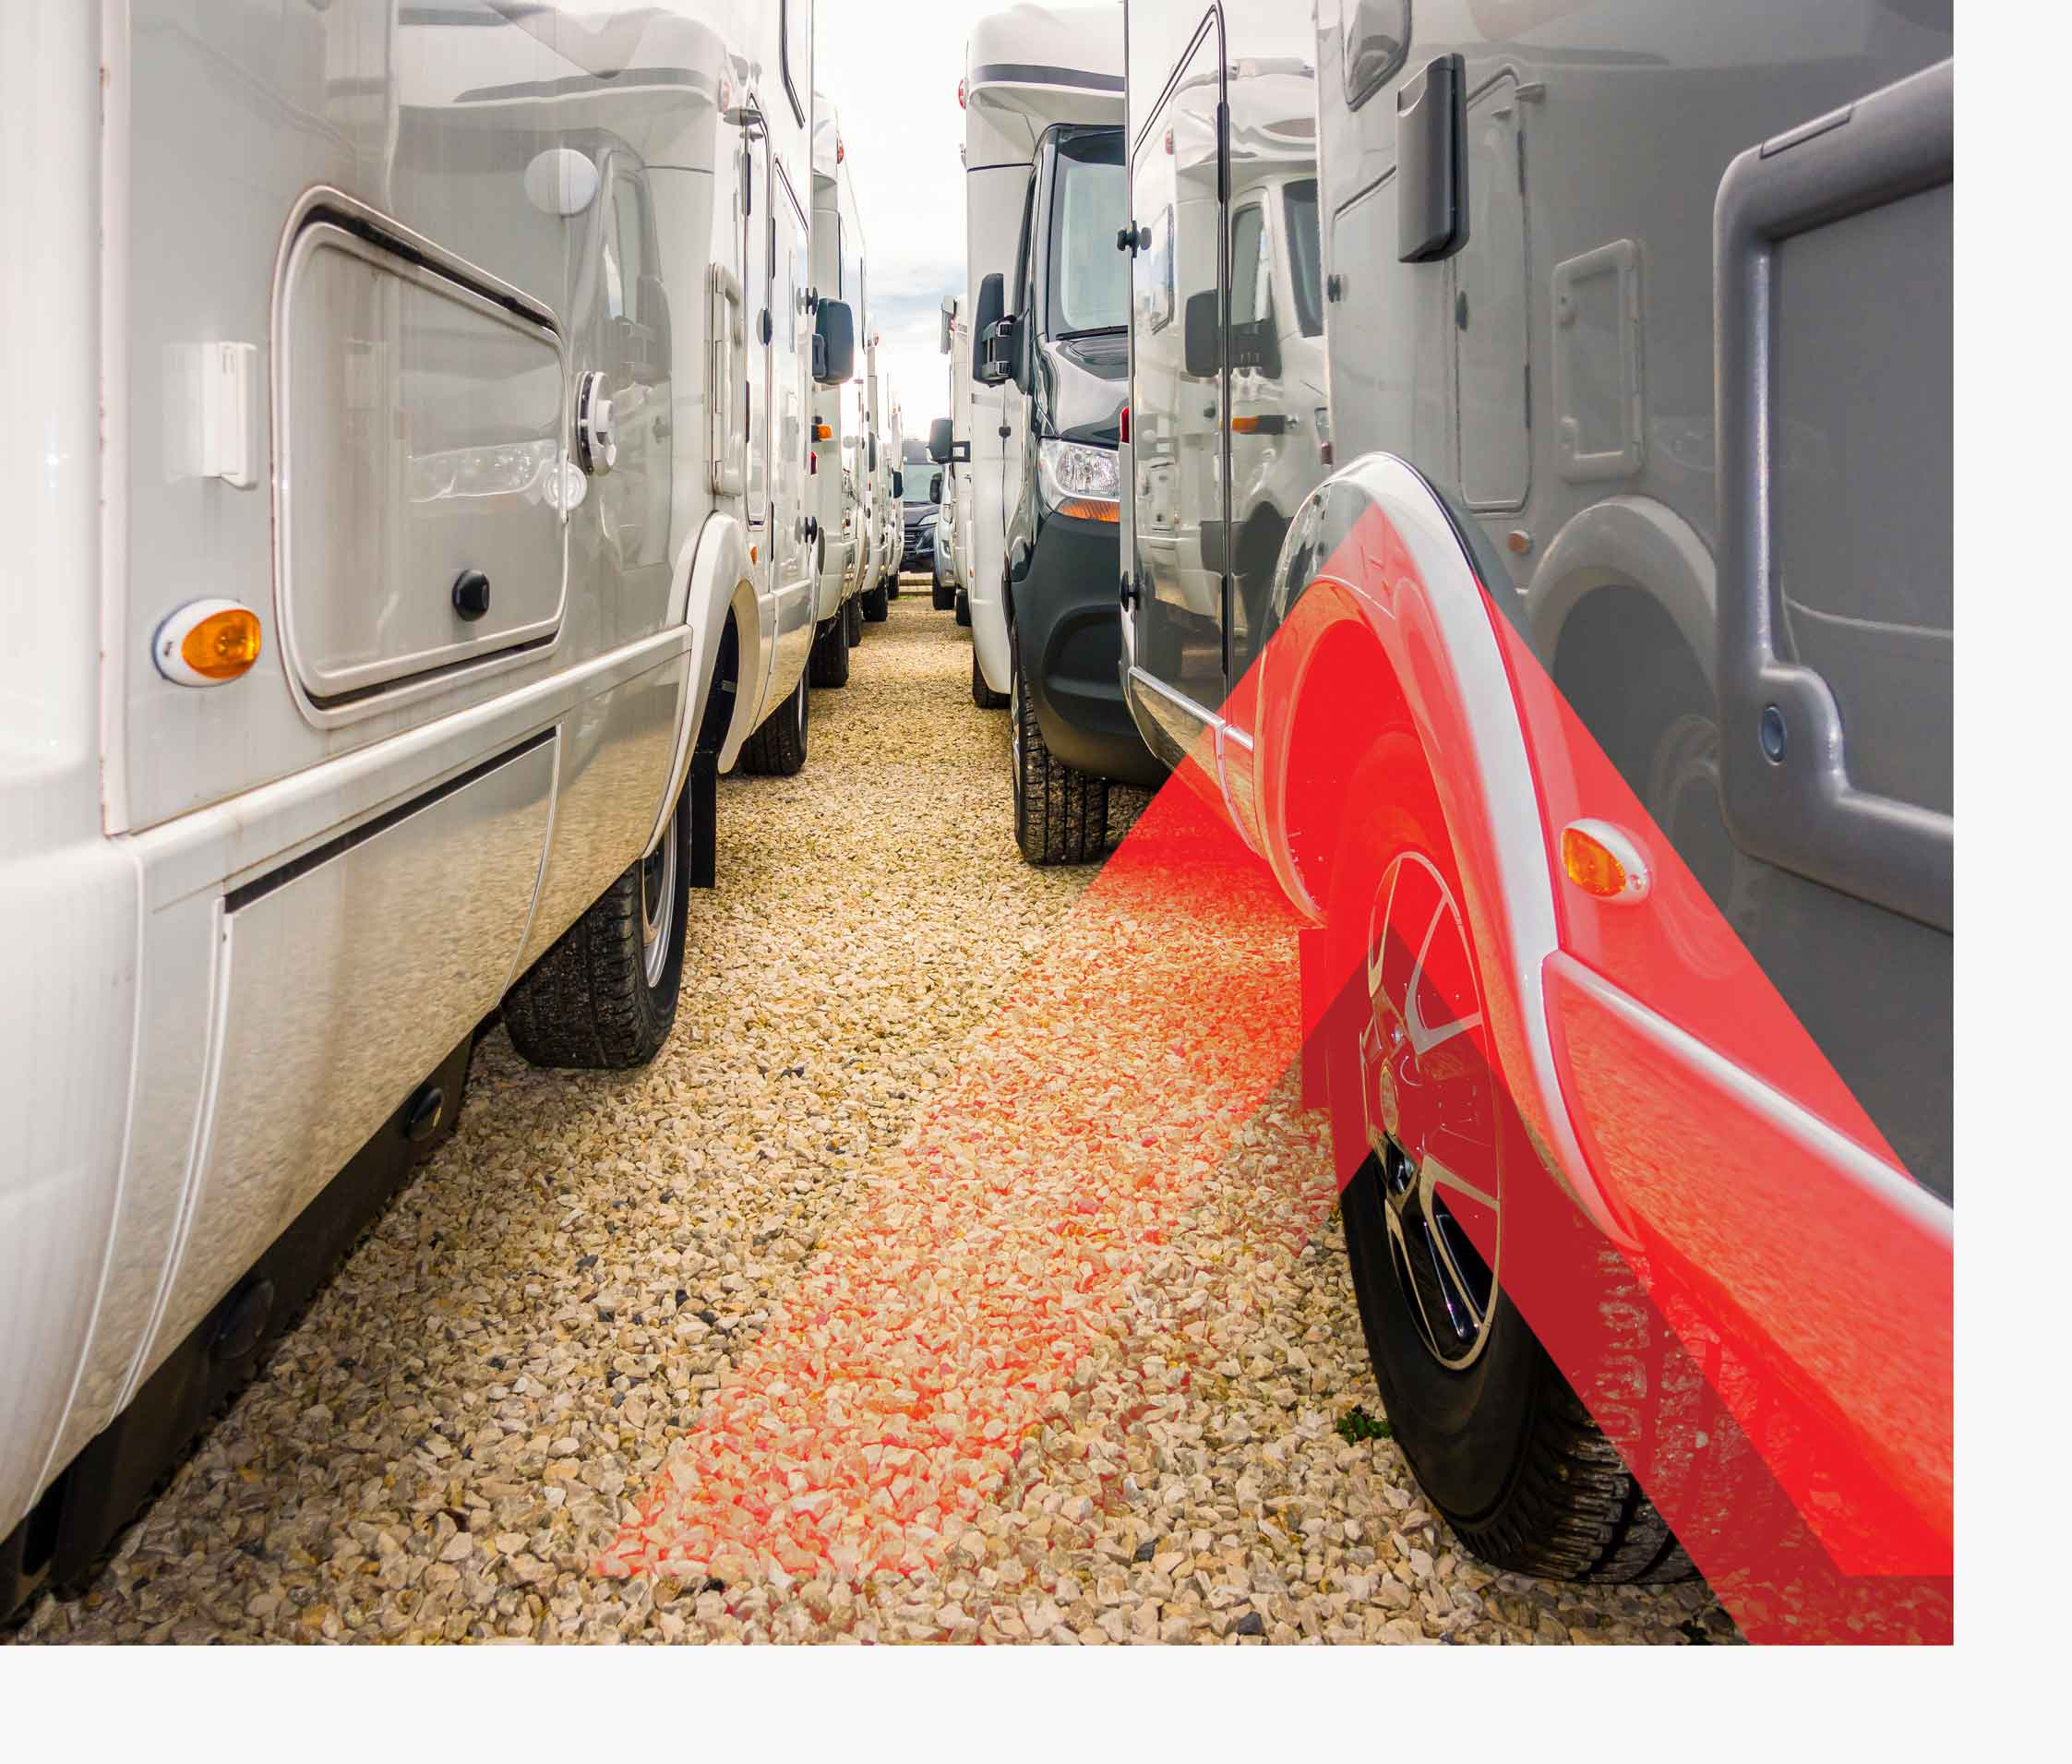 View of Rv's